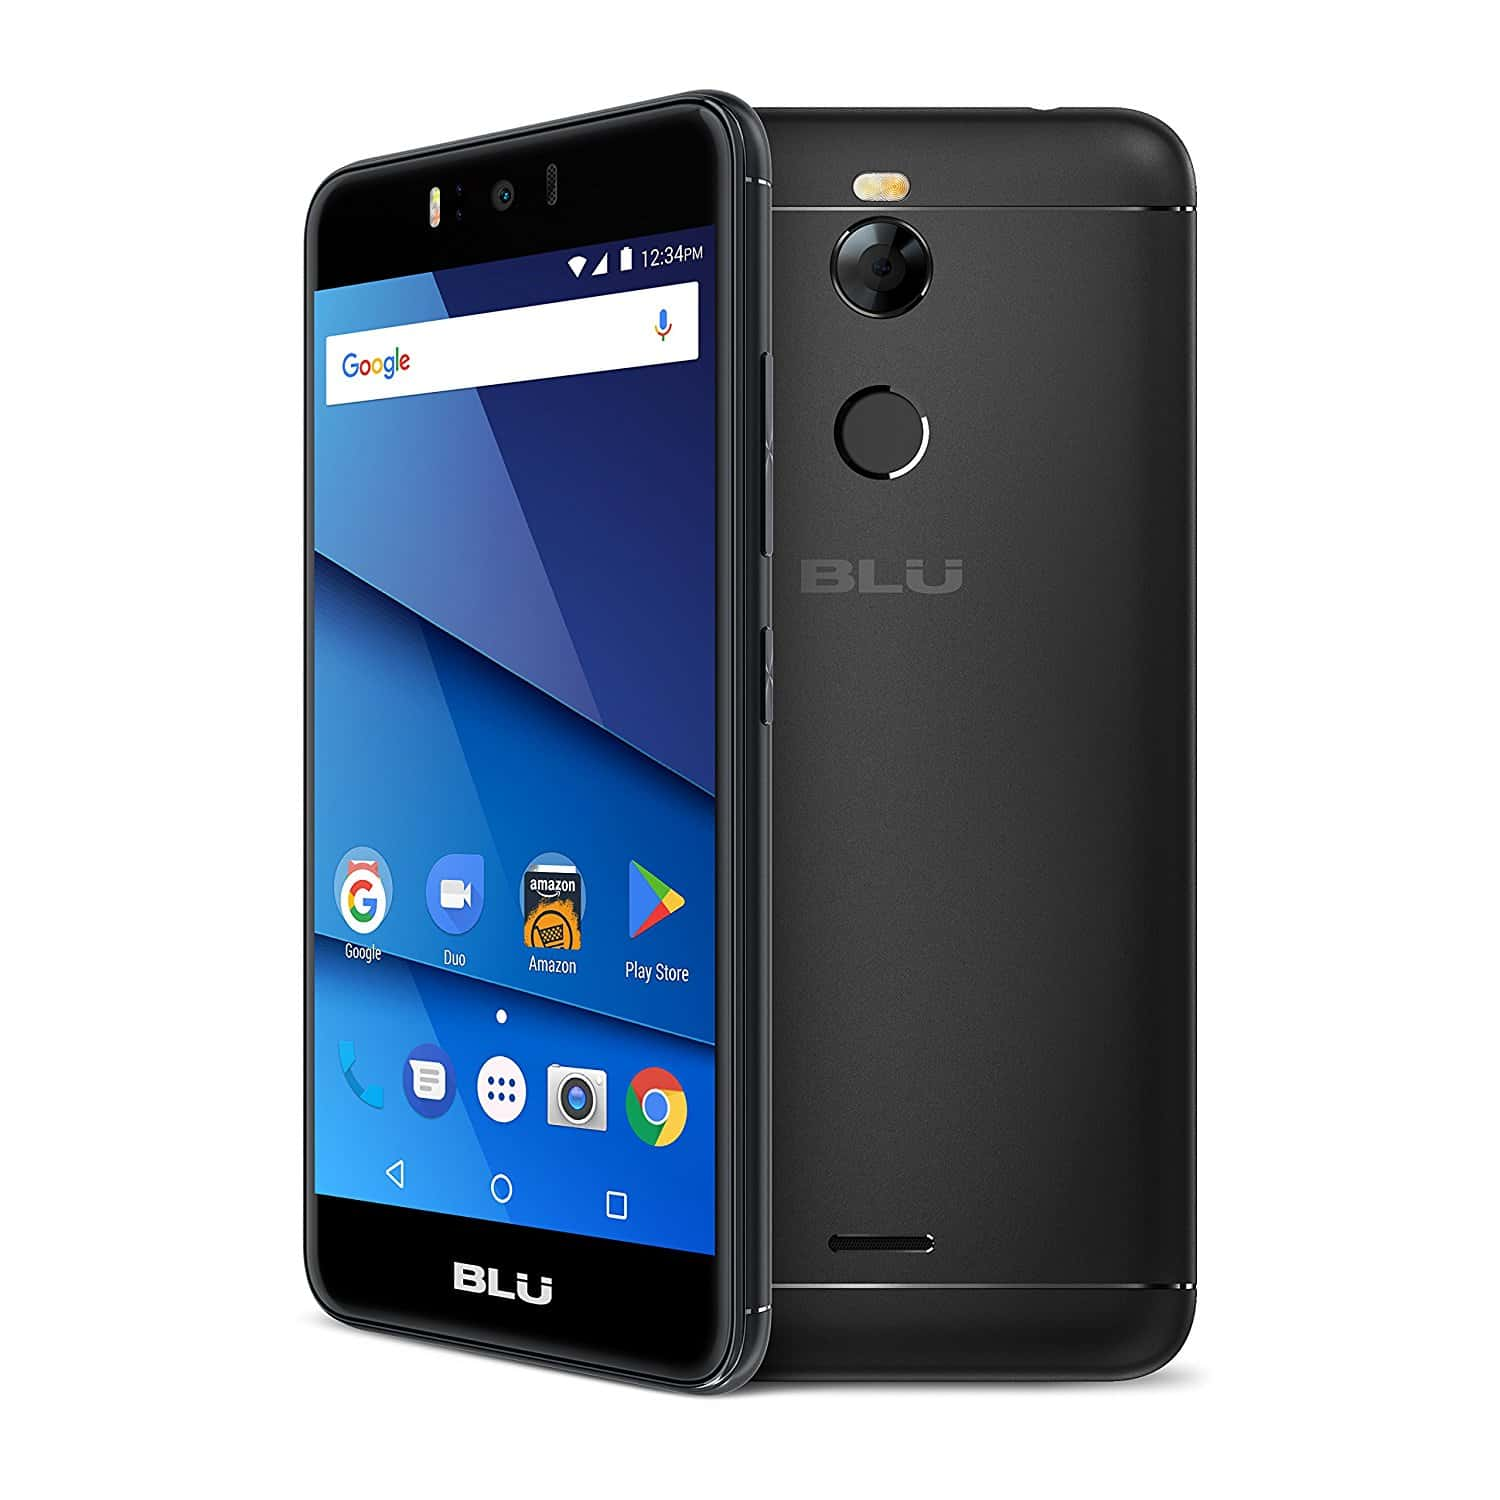 BLU R2 8 1 - Blu R2 LTE Price, Specs, Features and Review.